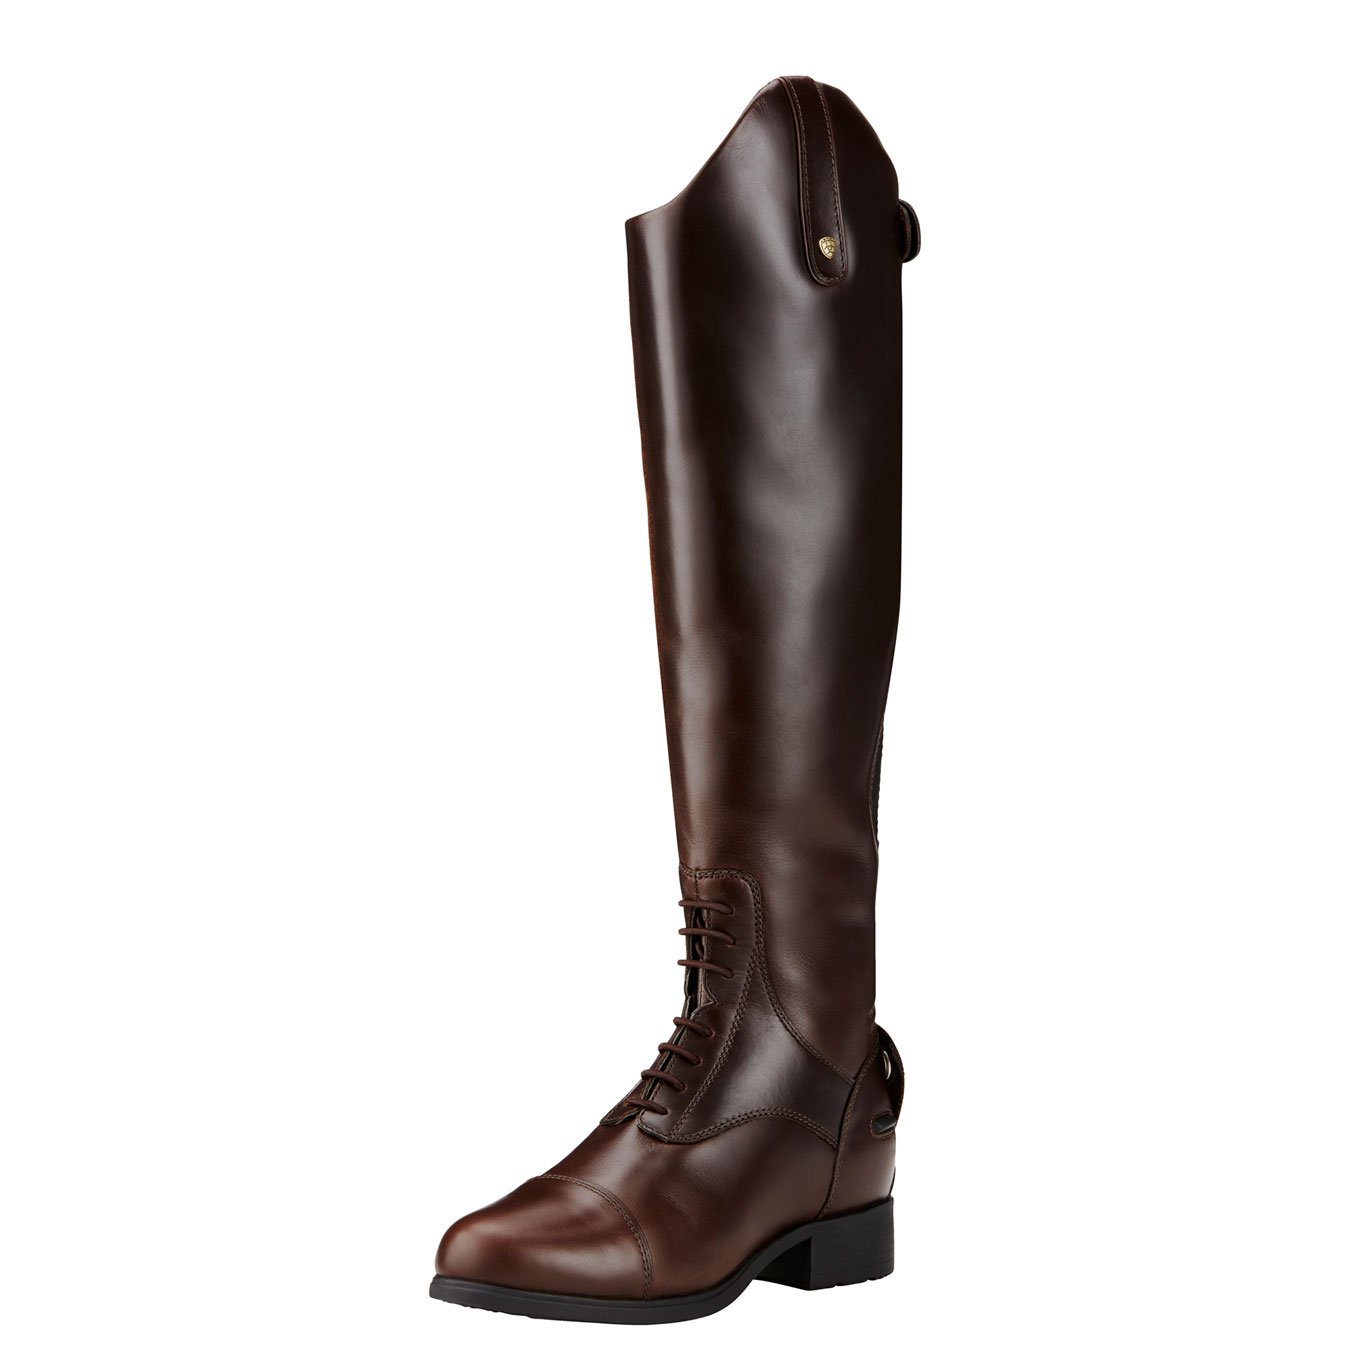 Waxed chocolate ARIAT femmes Winterreitbottes BROMONT PRO TALL H2O insulated 8,5 (42,5) RS